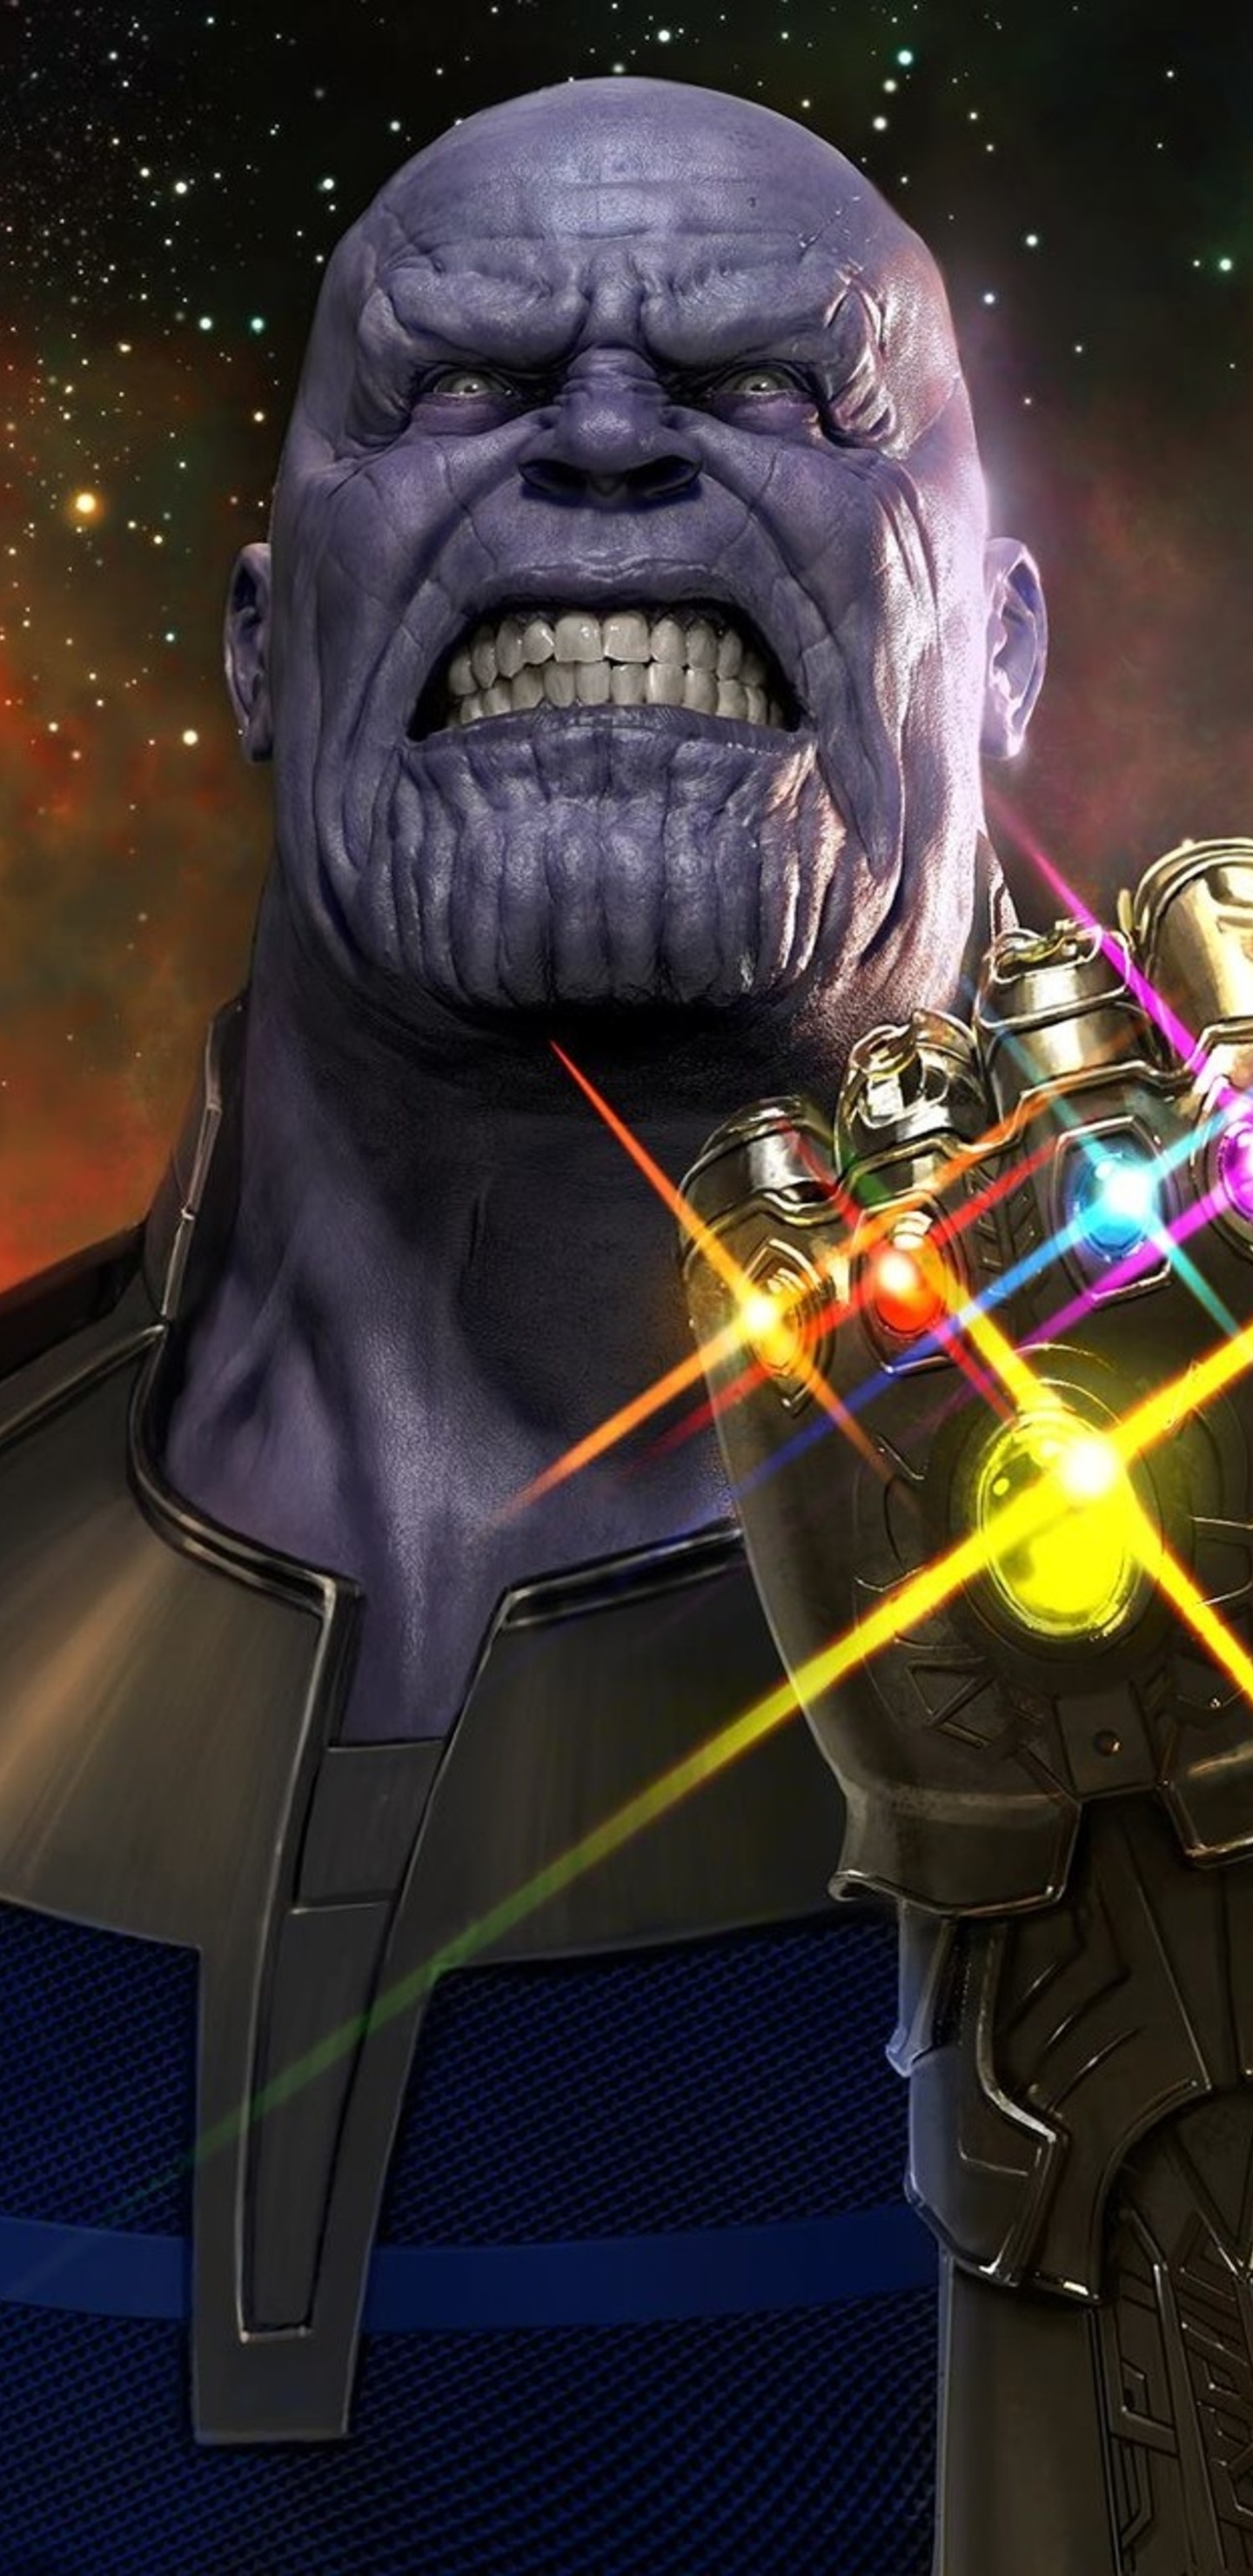 1440x2960 Thanos Avengers Infinity War Samsung Galaxy Note 9